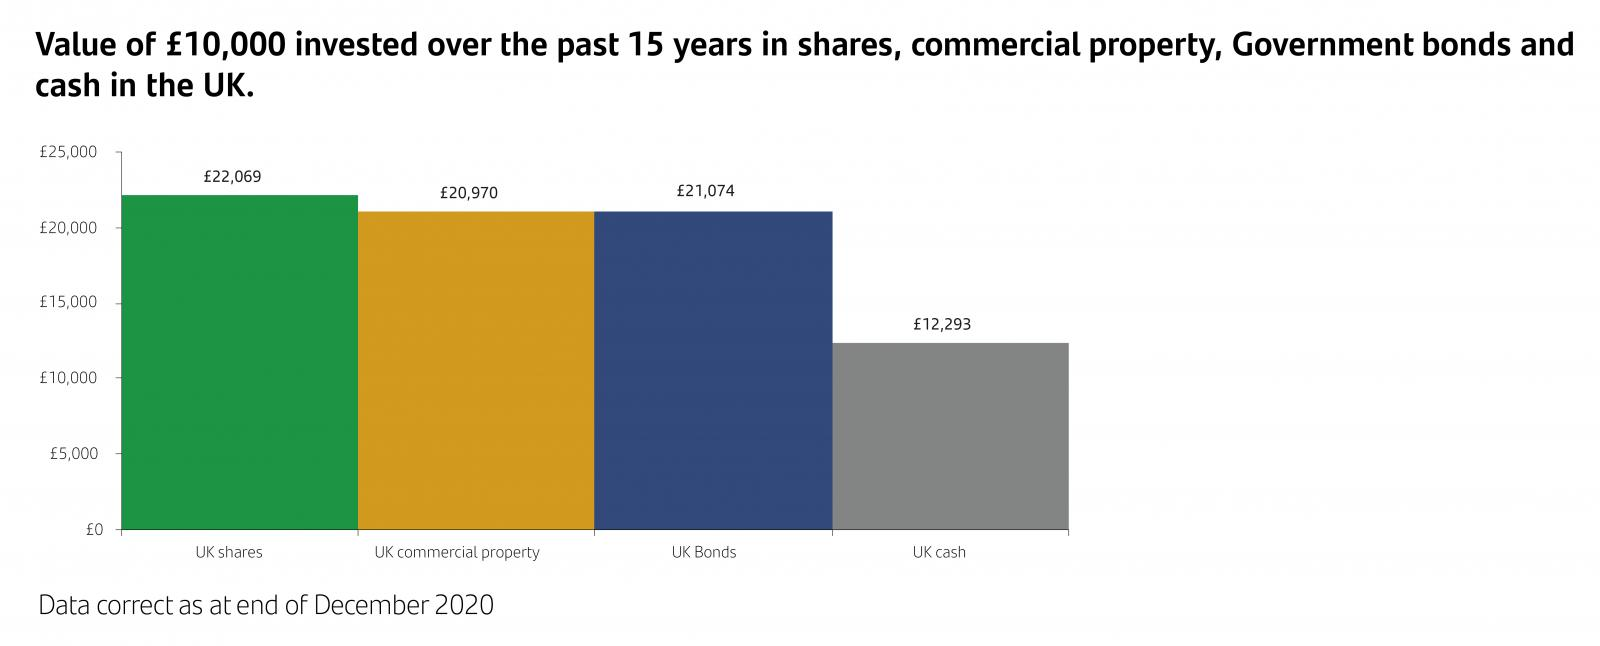 Value of £10,000 invested over the past 15 years in shares, commercial property, Government bonds and cash in the UK.